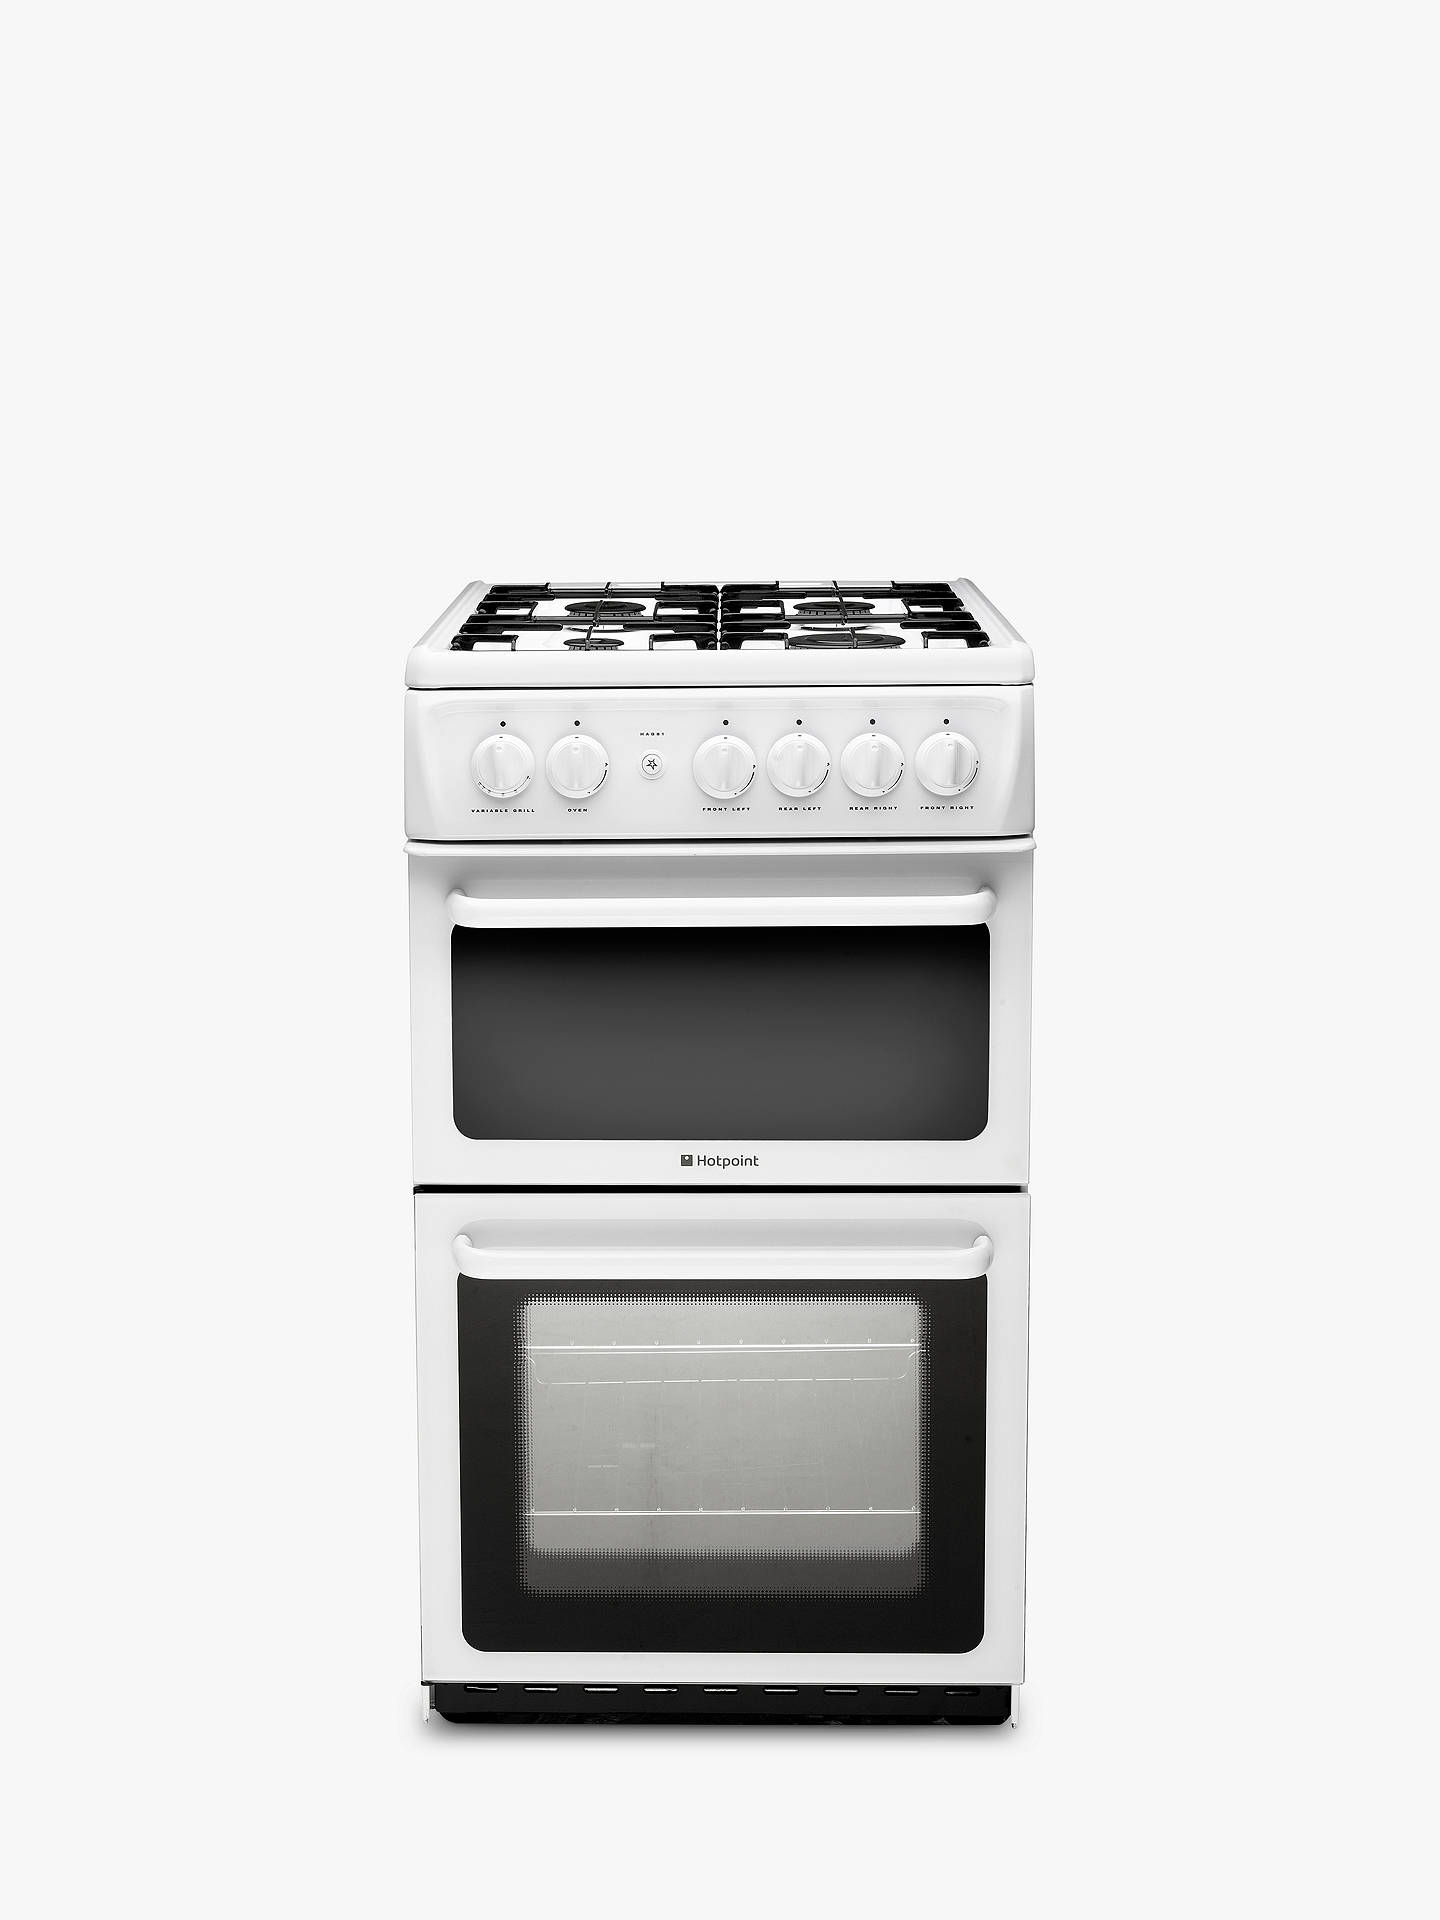 hotpoint hag51p newstyle gas cooker white at john lewis. Black Bedroom Furniture Sets. Home Design Ideas